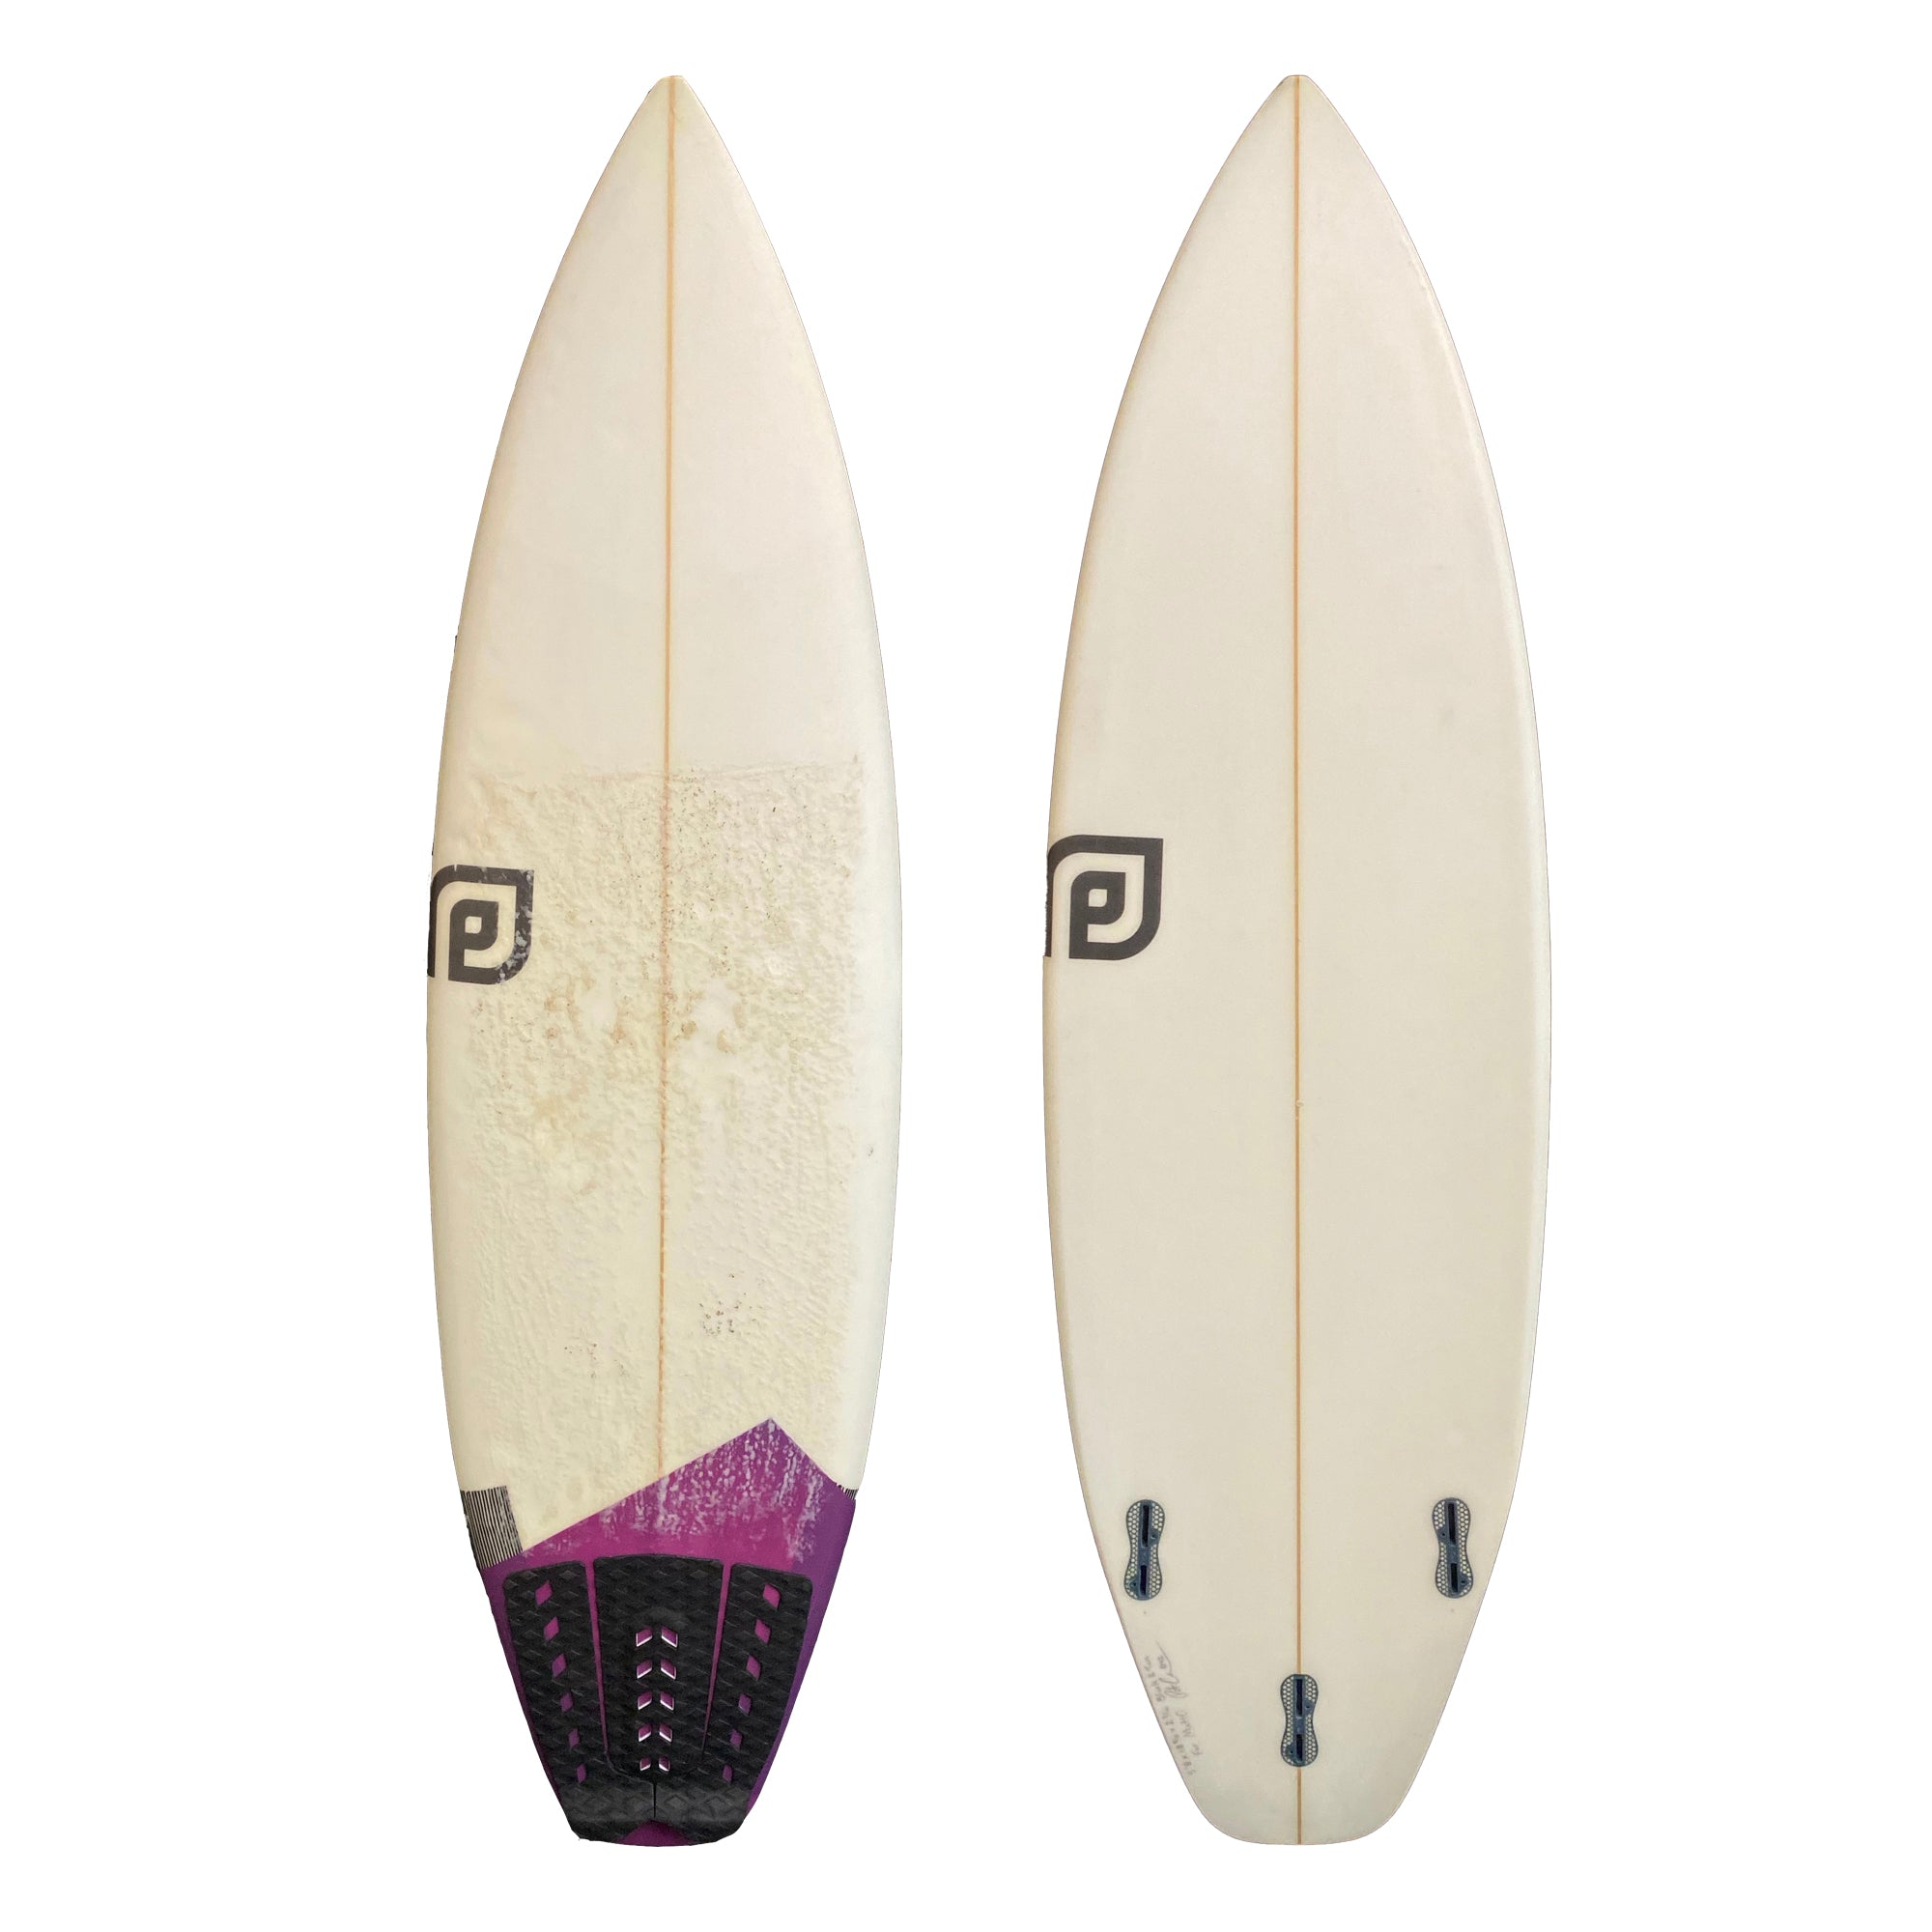 CSD Black and Tan 5'8 Used Surfboard